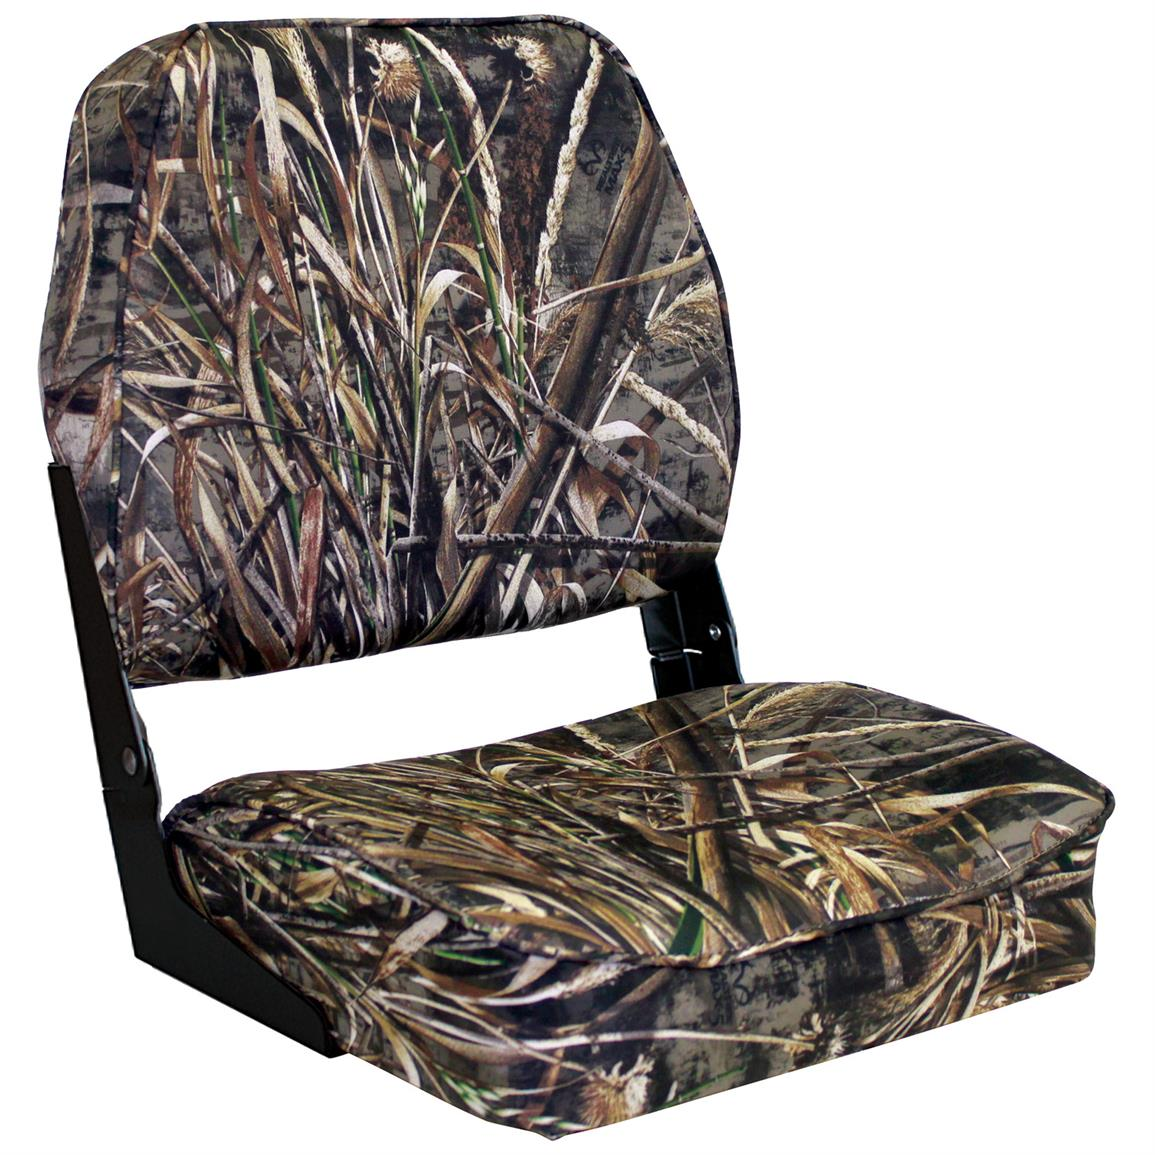 Wise Low Back Camo Boat Seat, Reatree MAX-5